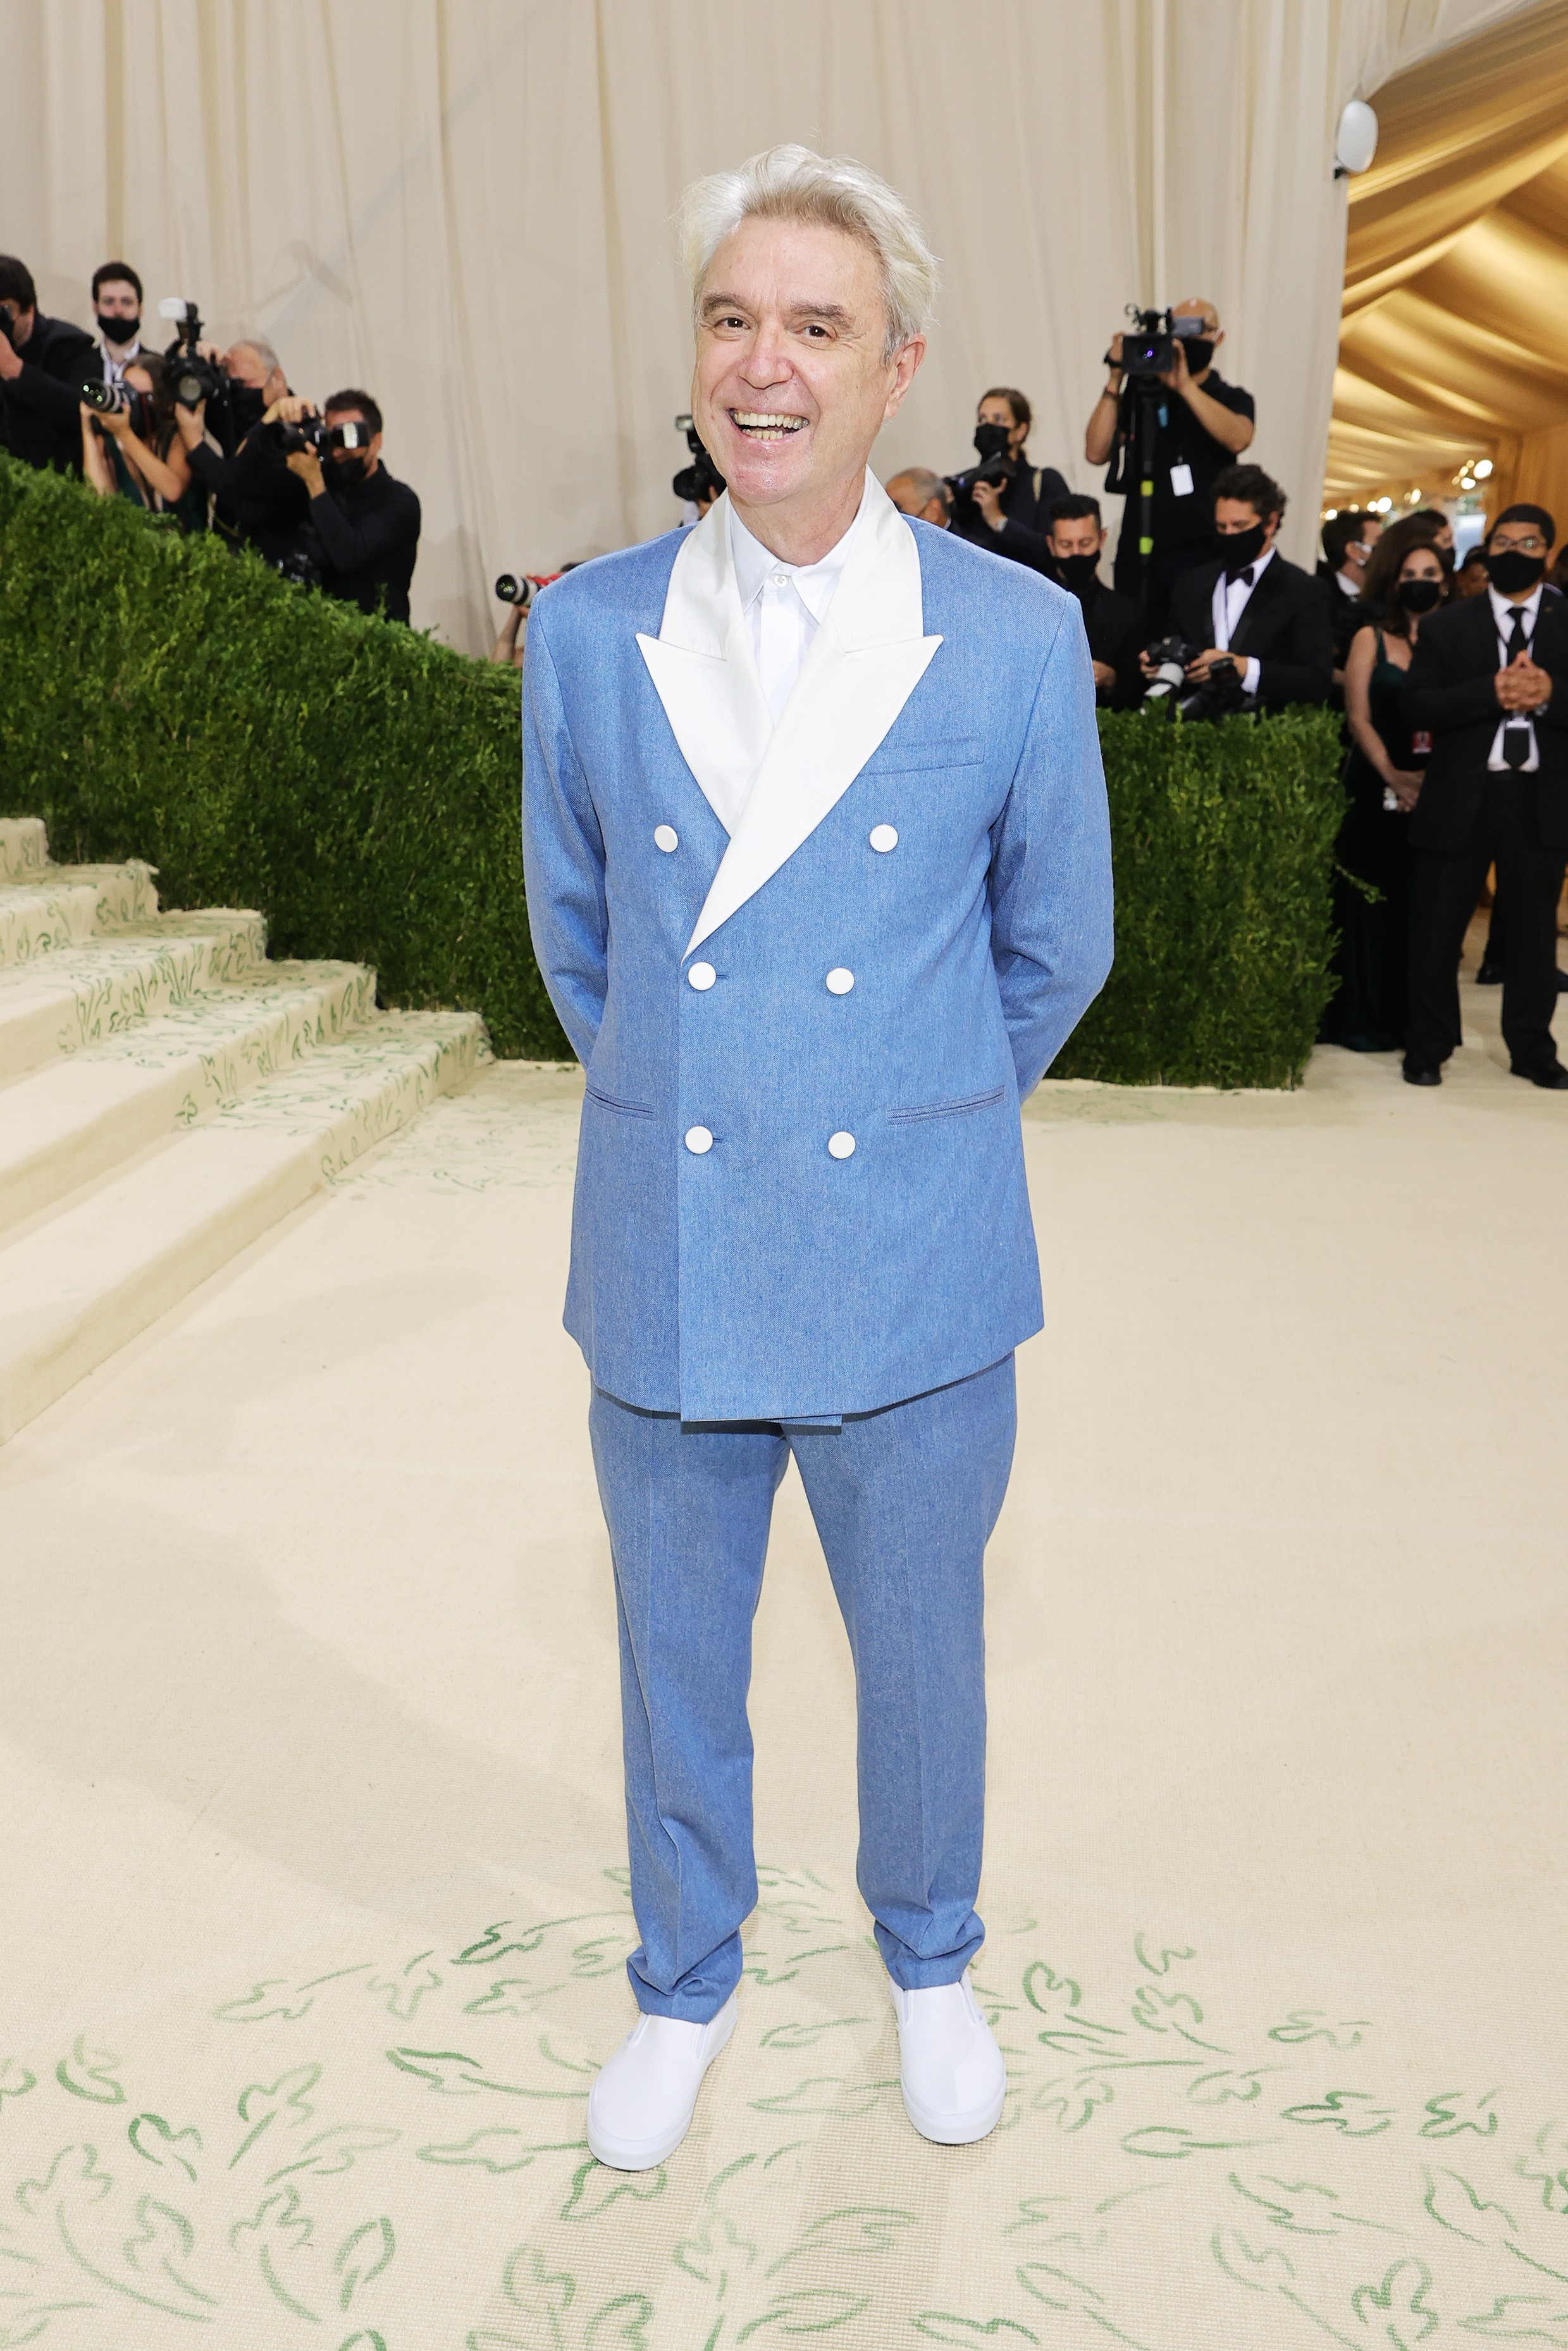 NEW YORK, NEW YORK - SEPTEMBER 13: David Byrne attends The 2021 Met Gala Celebrating In America: A Lexicon Of Fashion at Metropolitan Museum of Art on September 13, 2021 in New York City. (Photo by Mike Coppola/Getty Images) (Foto: Getty Images)